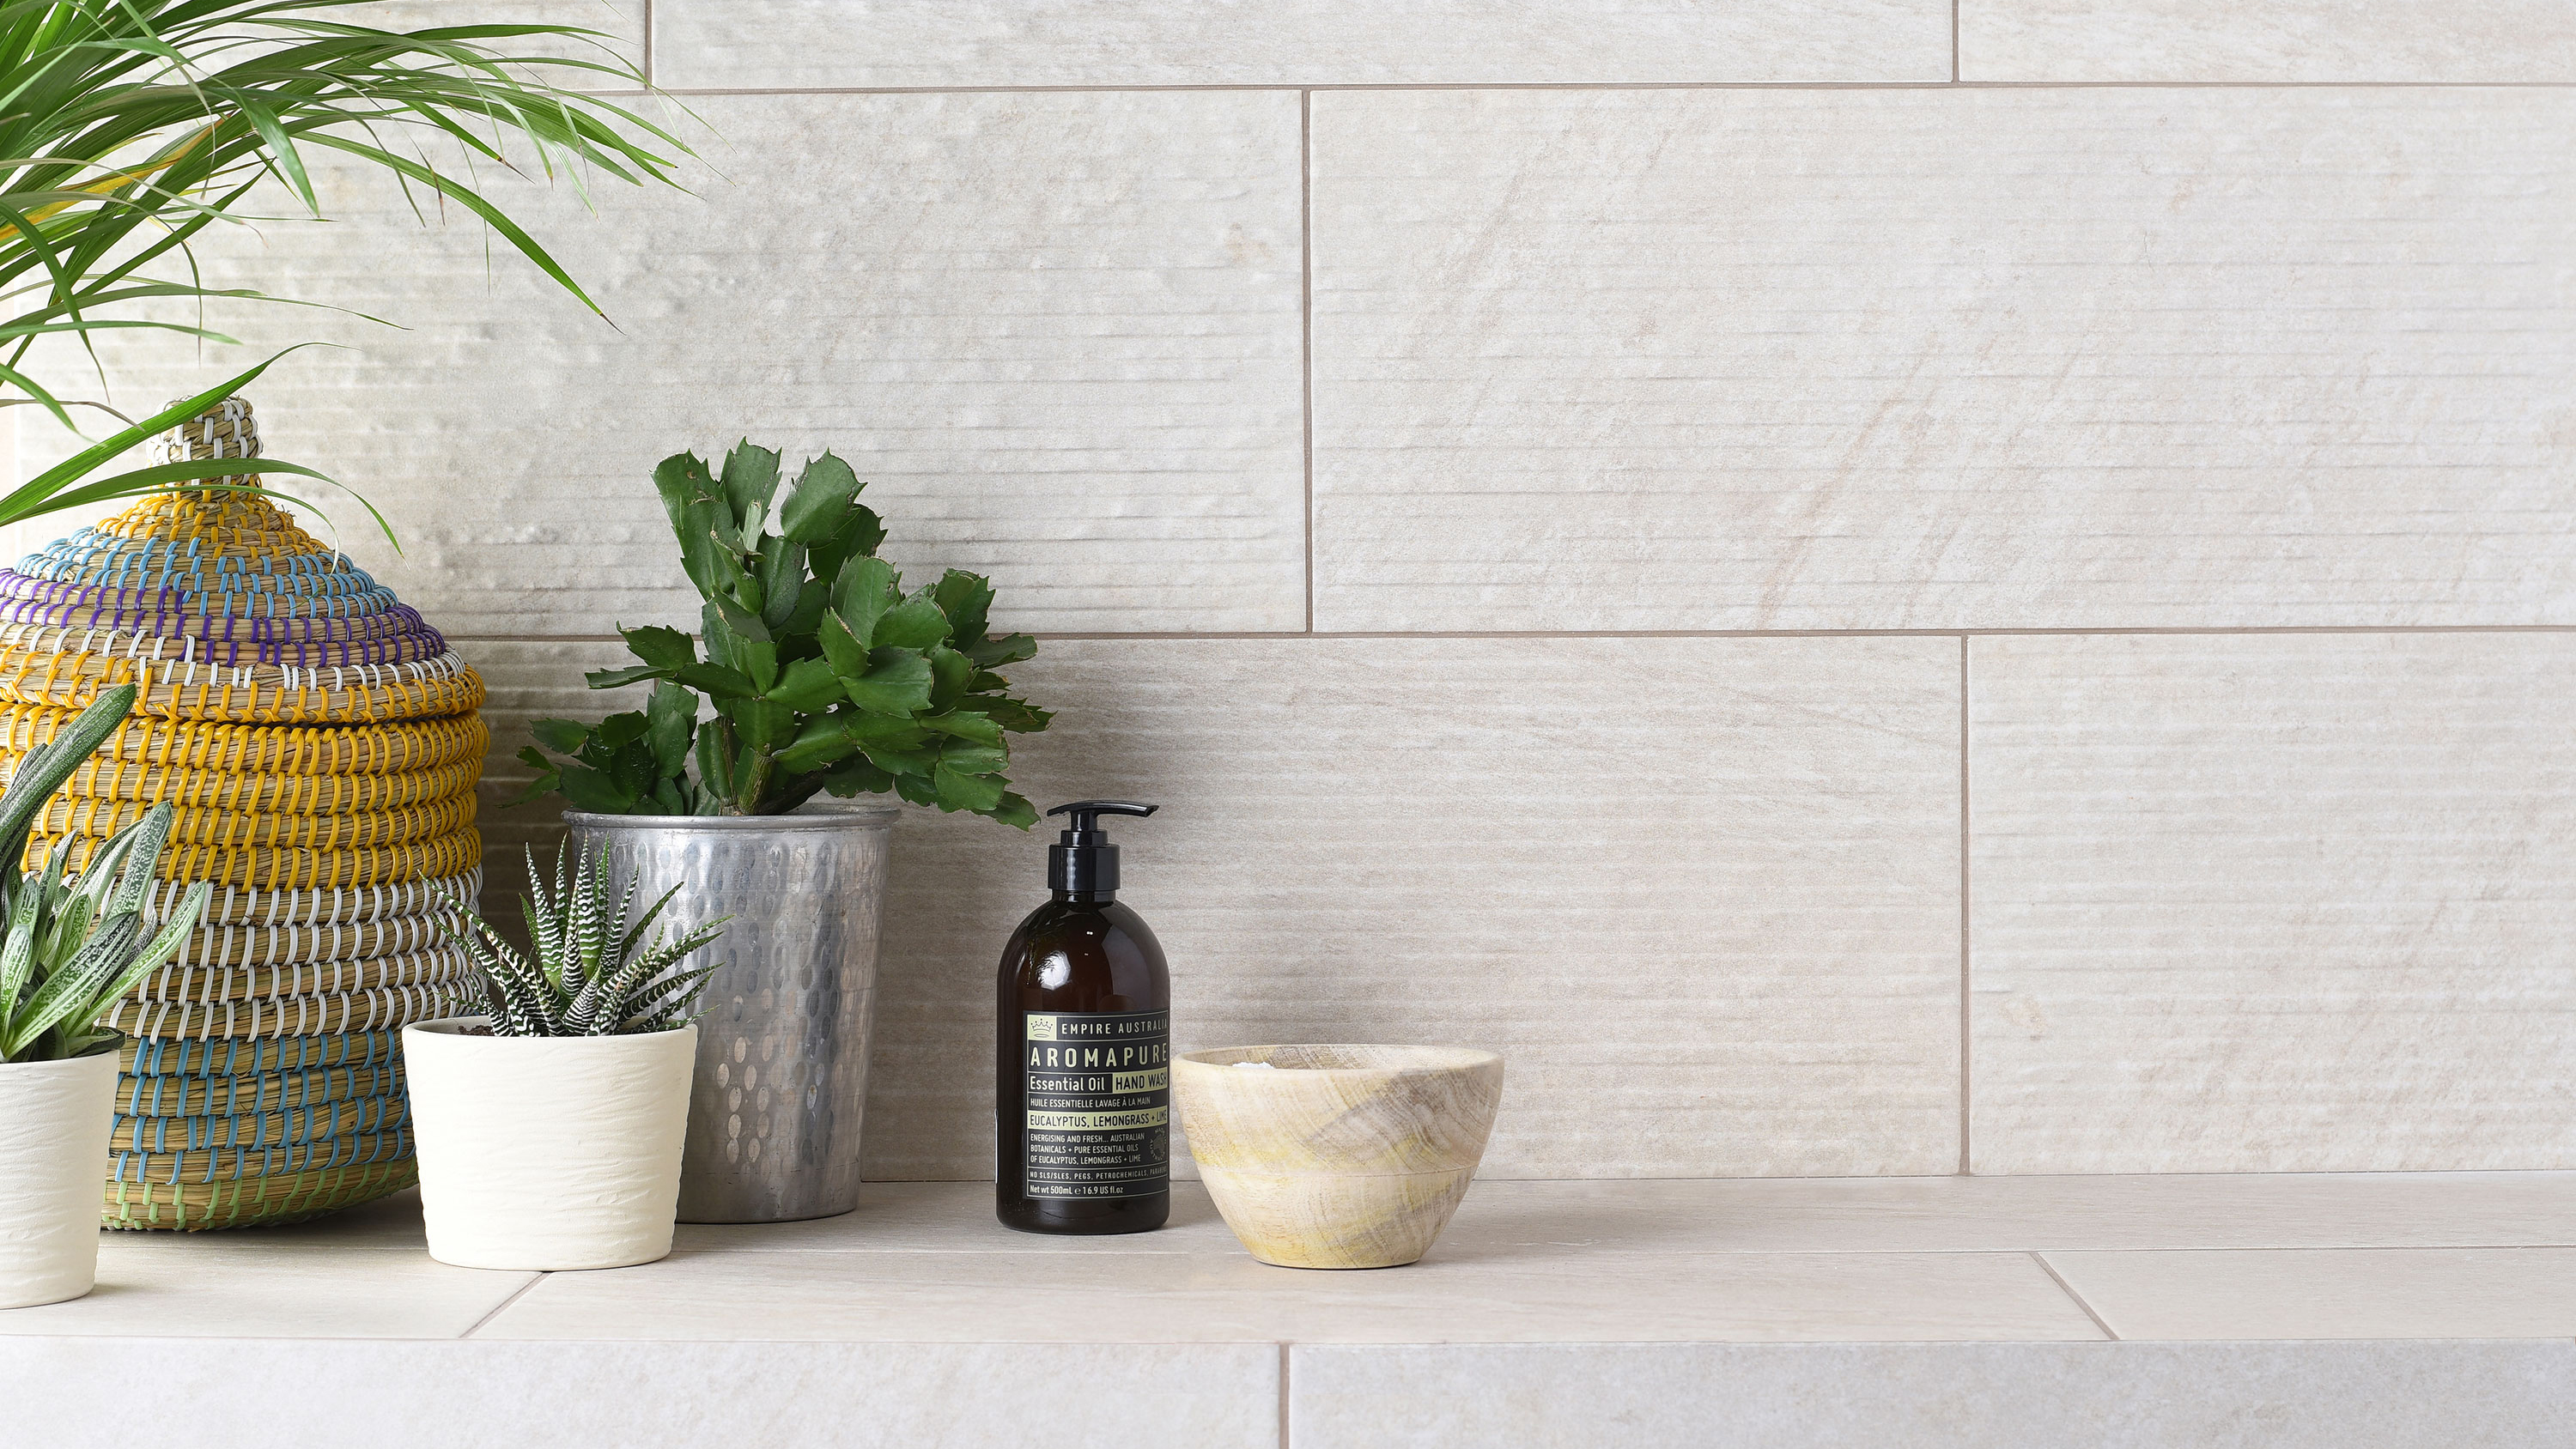 How to choose bathroom tiles | Real Homes